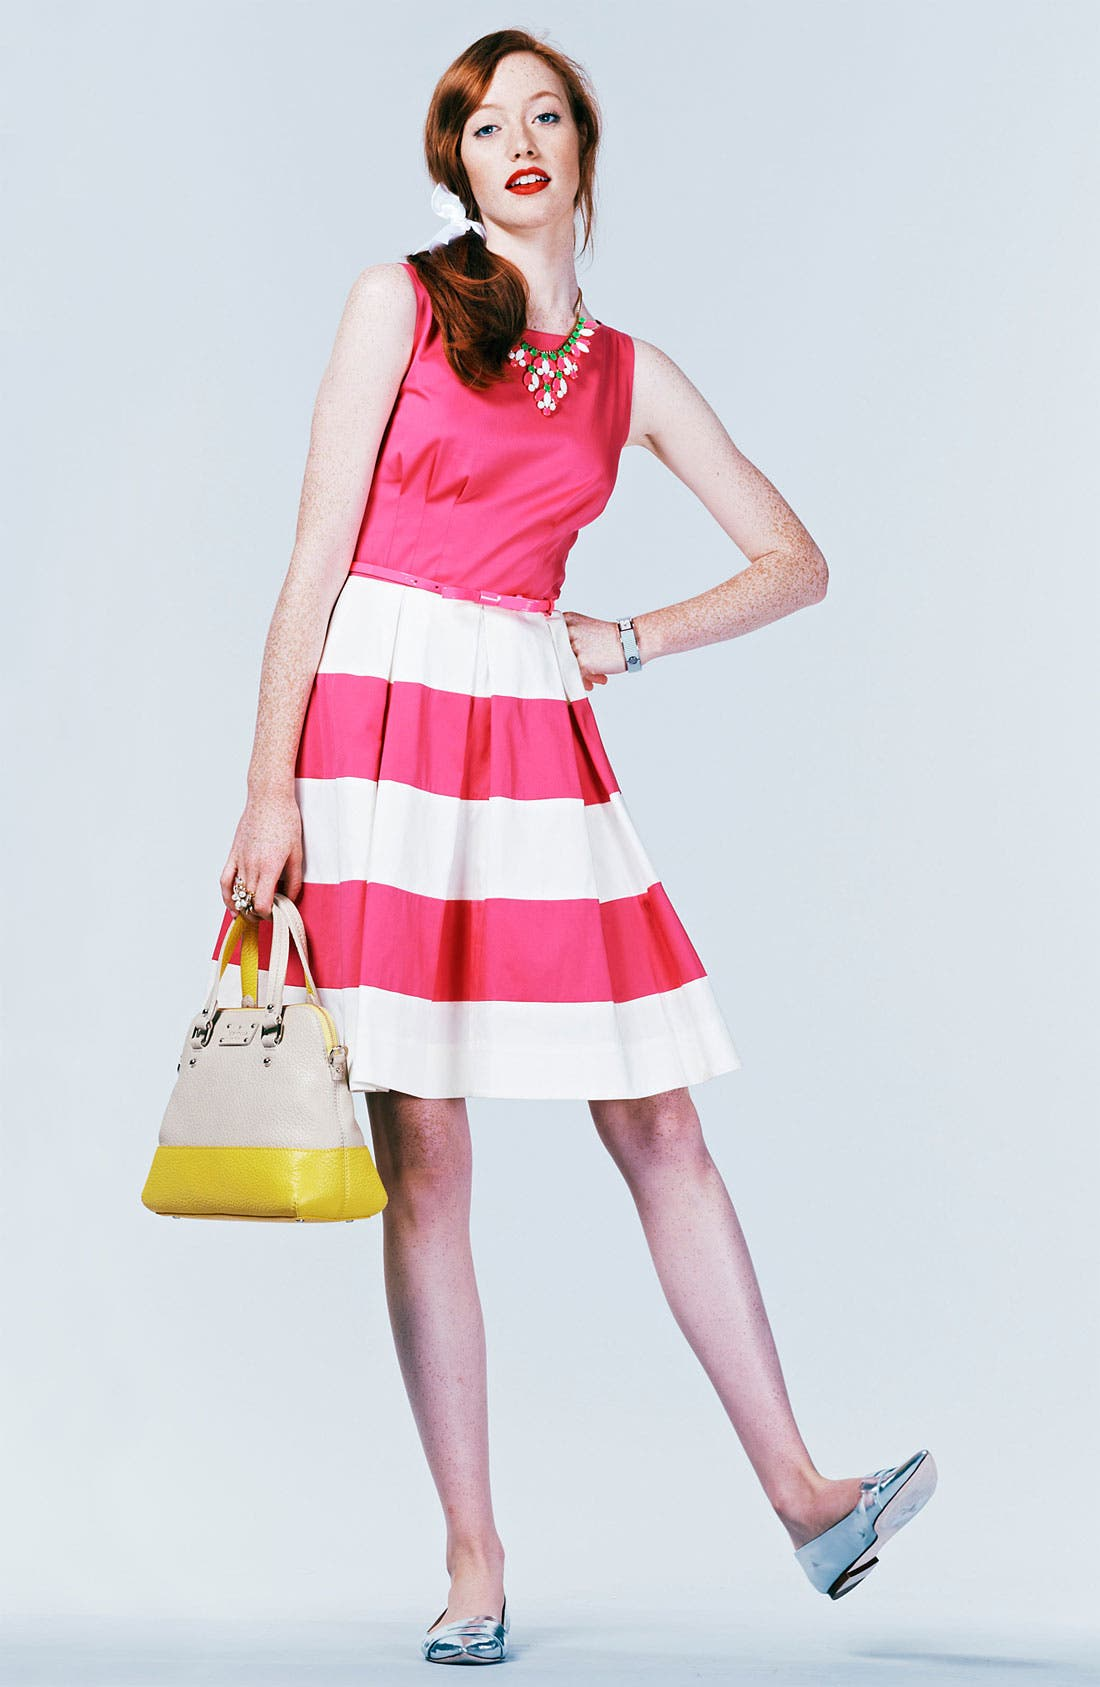 Main Image - kate spade new york dress & accessories